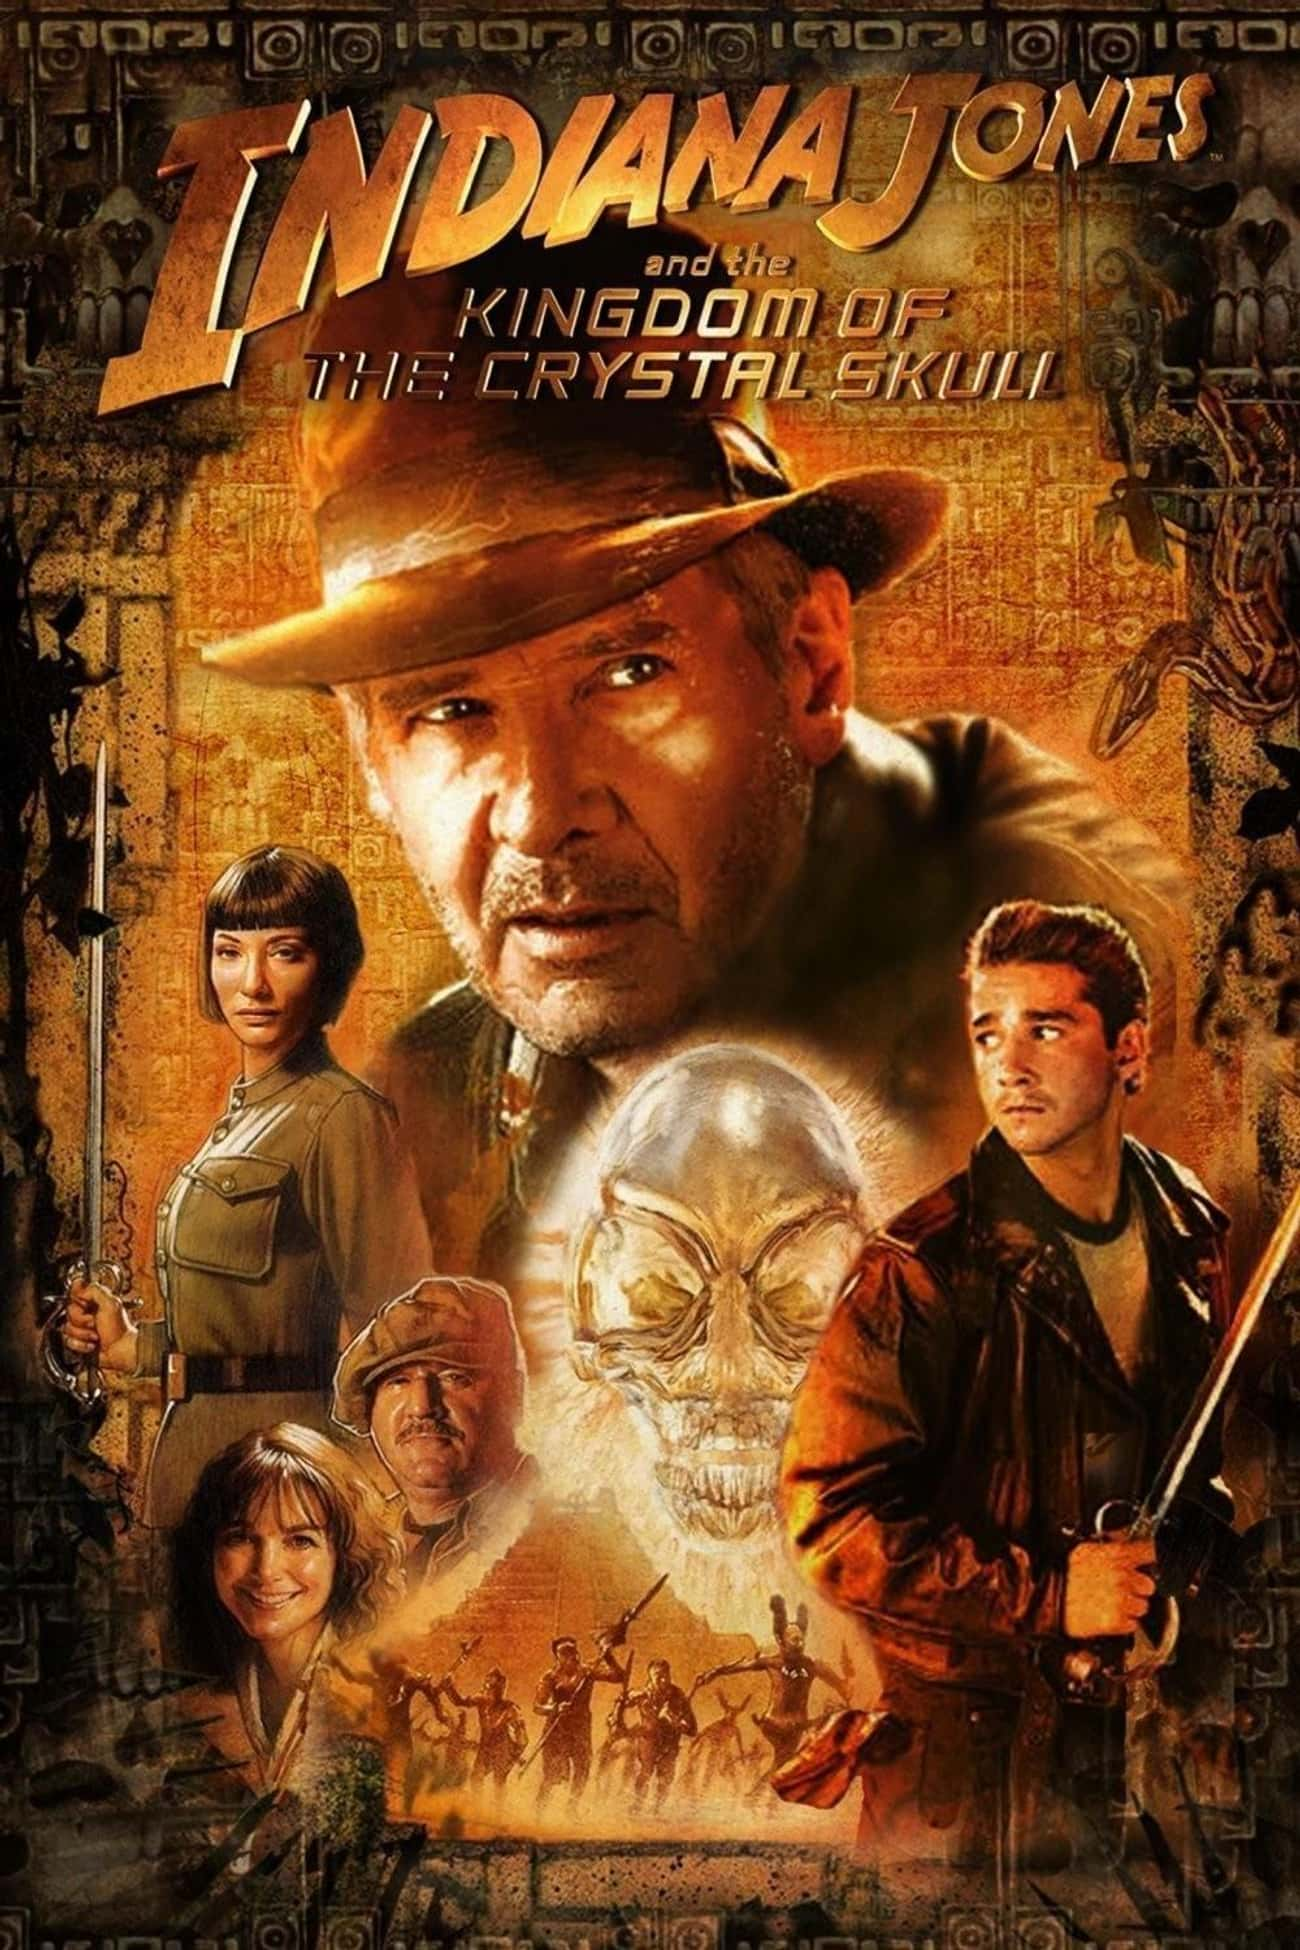 Indiana Jones and the Kingdom  is listed (or ranked) 4 on the list The Best Movies (and Series) in the Indiana Jones Franchise, Ranked